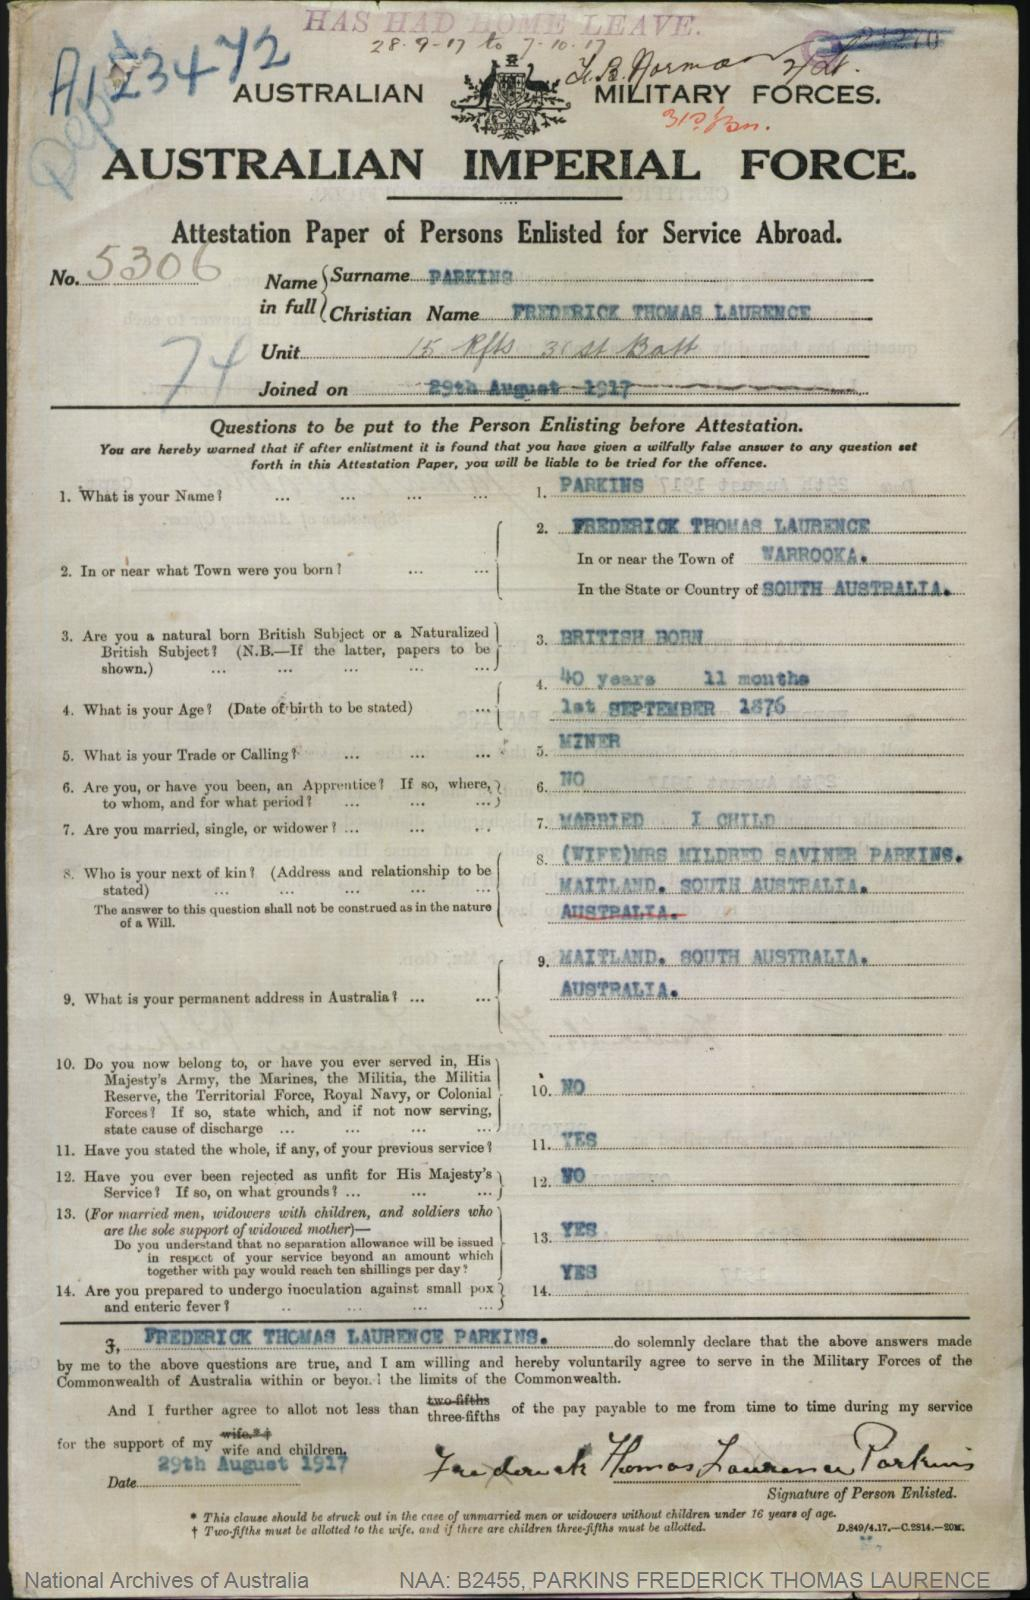 PARKINS Frederick Thomas Laurence : Service Number - 5306 : Place of Birth - Warooka SA : Place of Enlistment - Brisbane QLD : Next of Kin - (Wife) PARKINS Mildred Saviner